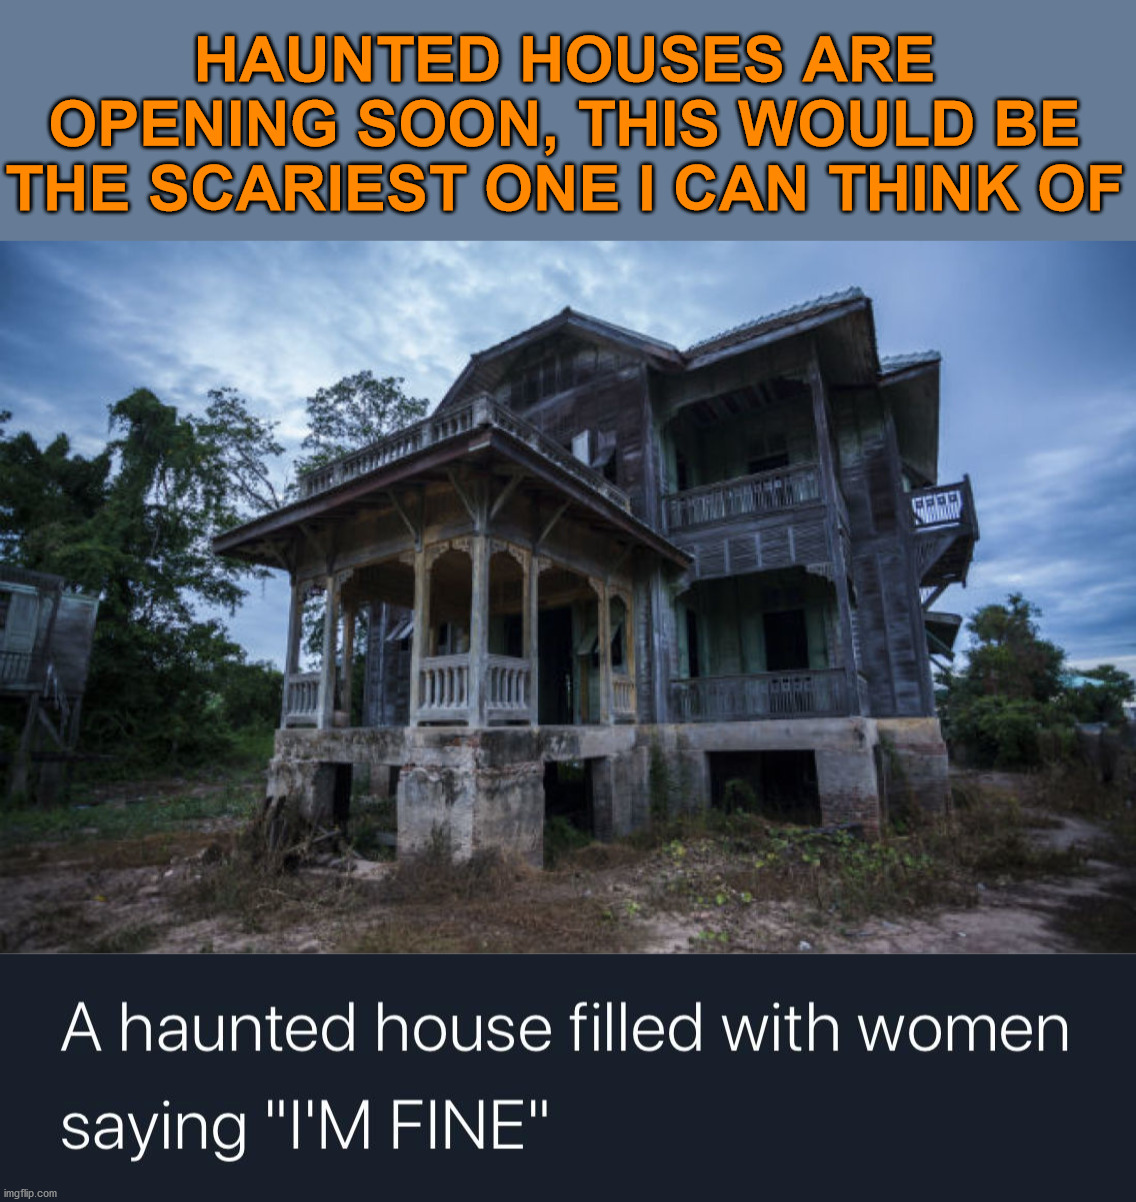 Makes me shake in my shoes to even think about it. |  HAUNTED HOUSES ARE OPENING SOON, THIS WOULD BE THE SCARIEST ONE I CAN THINK OF | image tagged in haunted house,i'm fine,women,scary | made w/ Imgflip meme maker